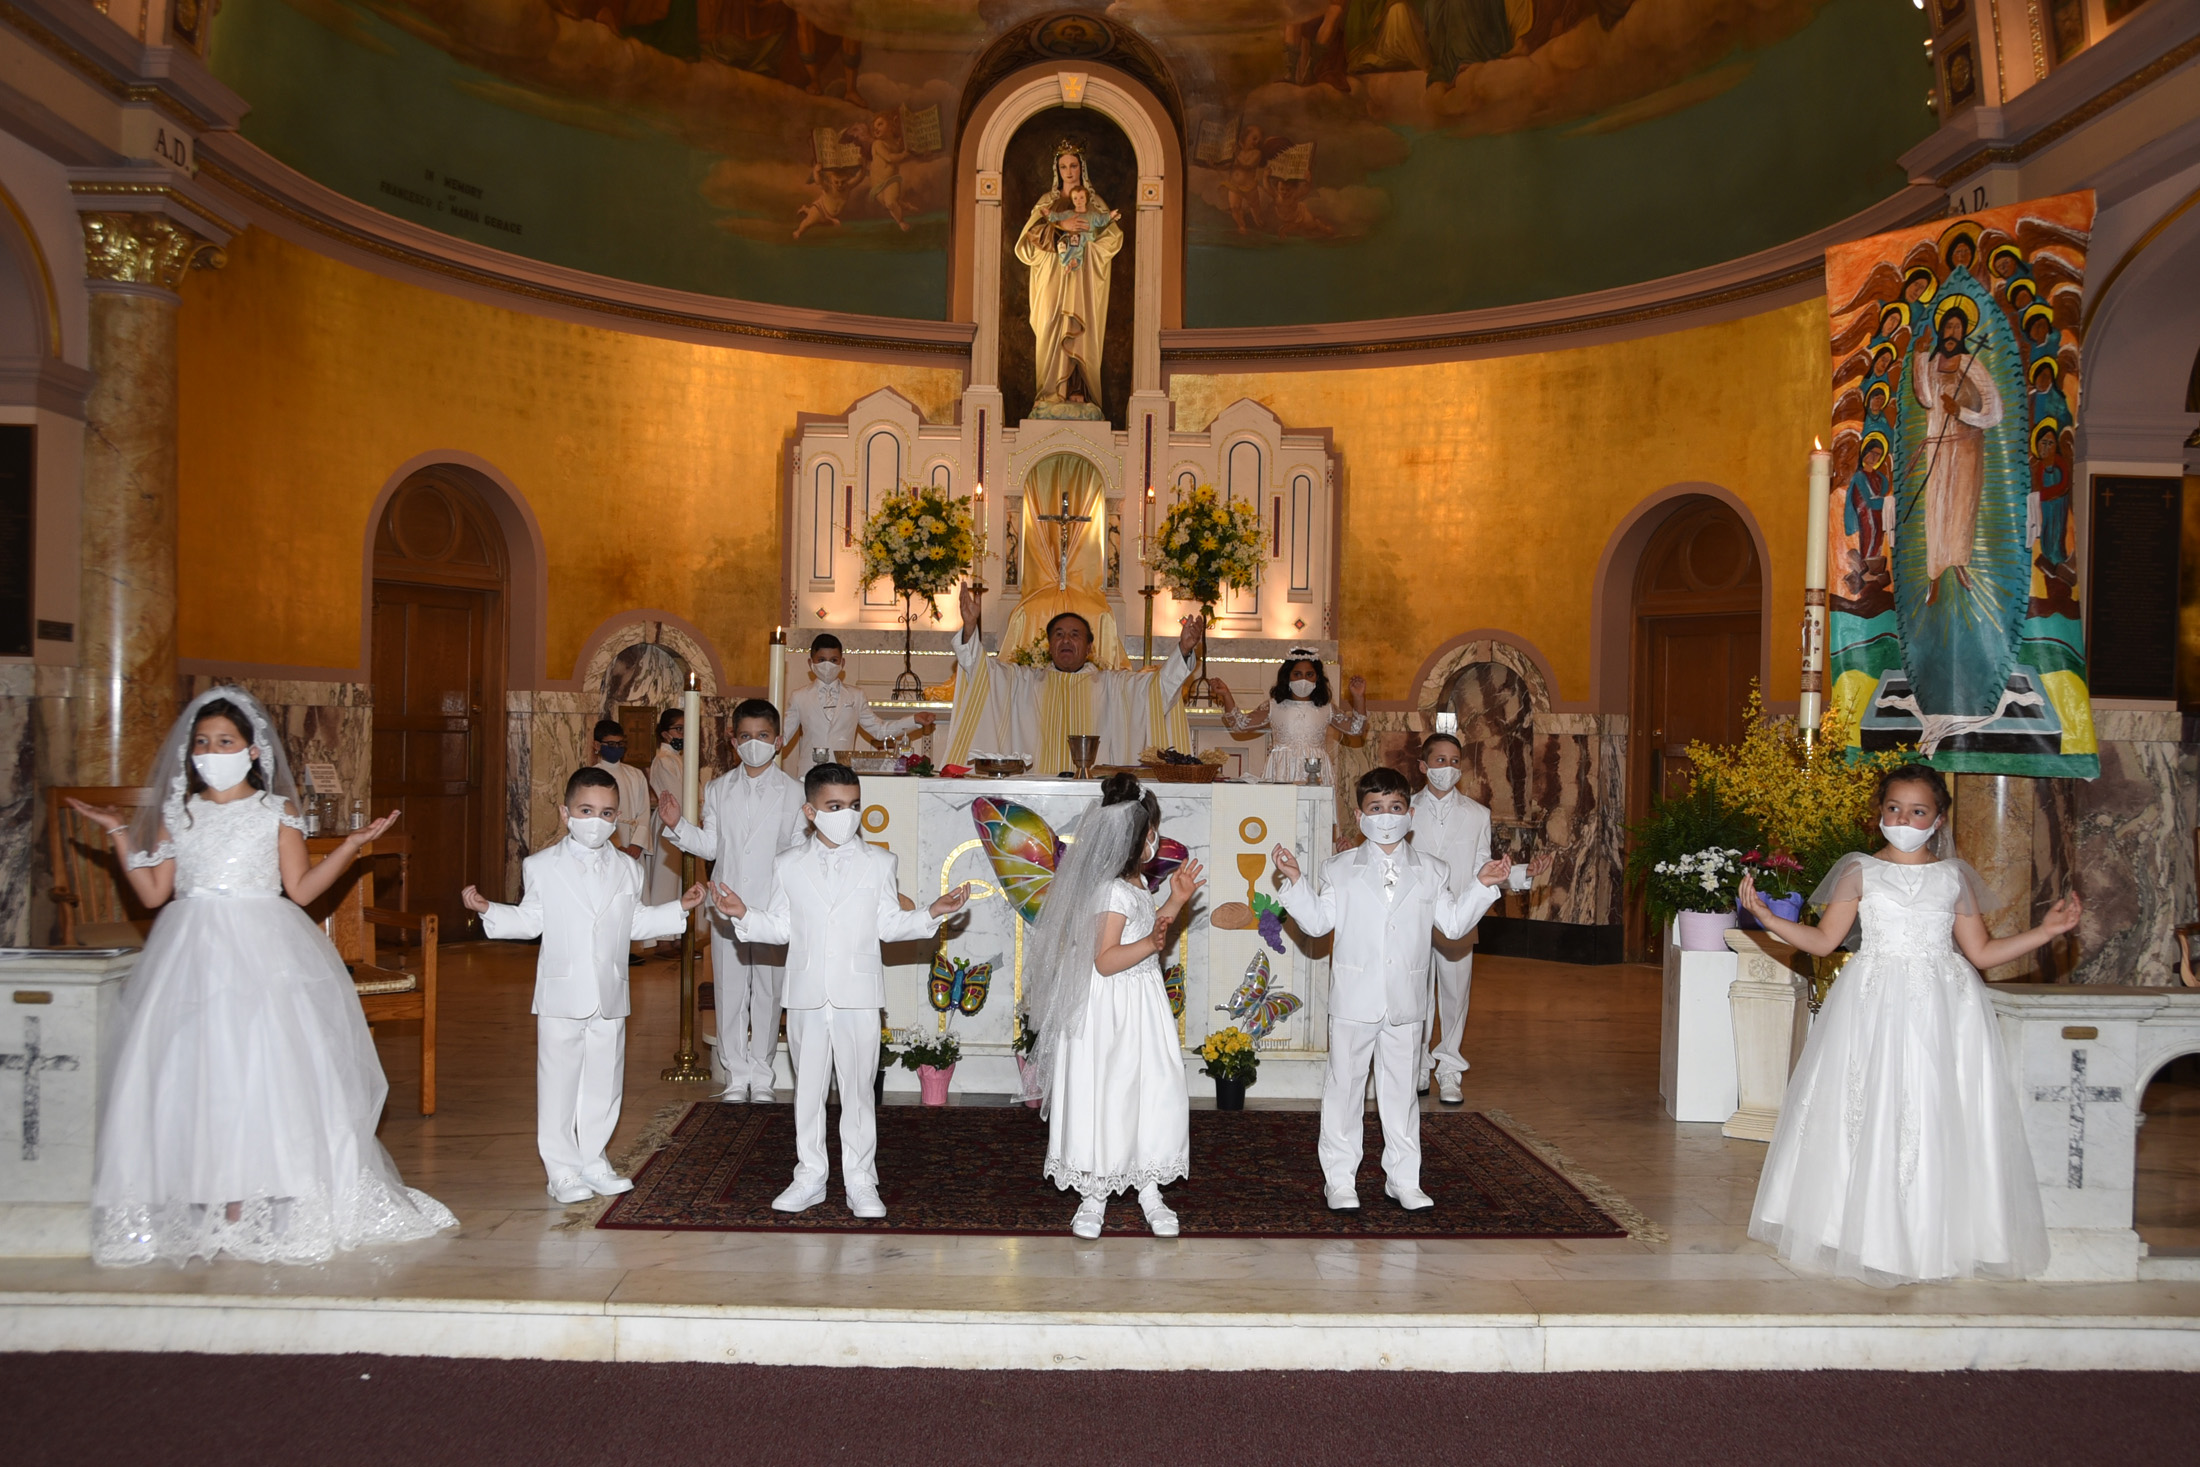 FIRST-COMMUNION-MAY-2-2021-1001001219